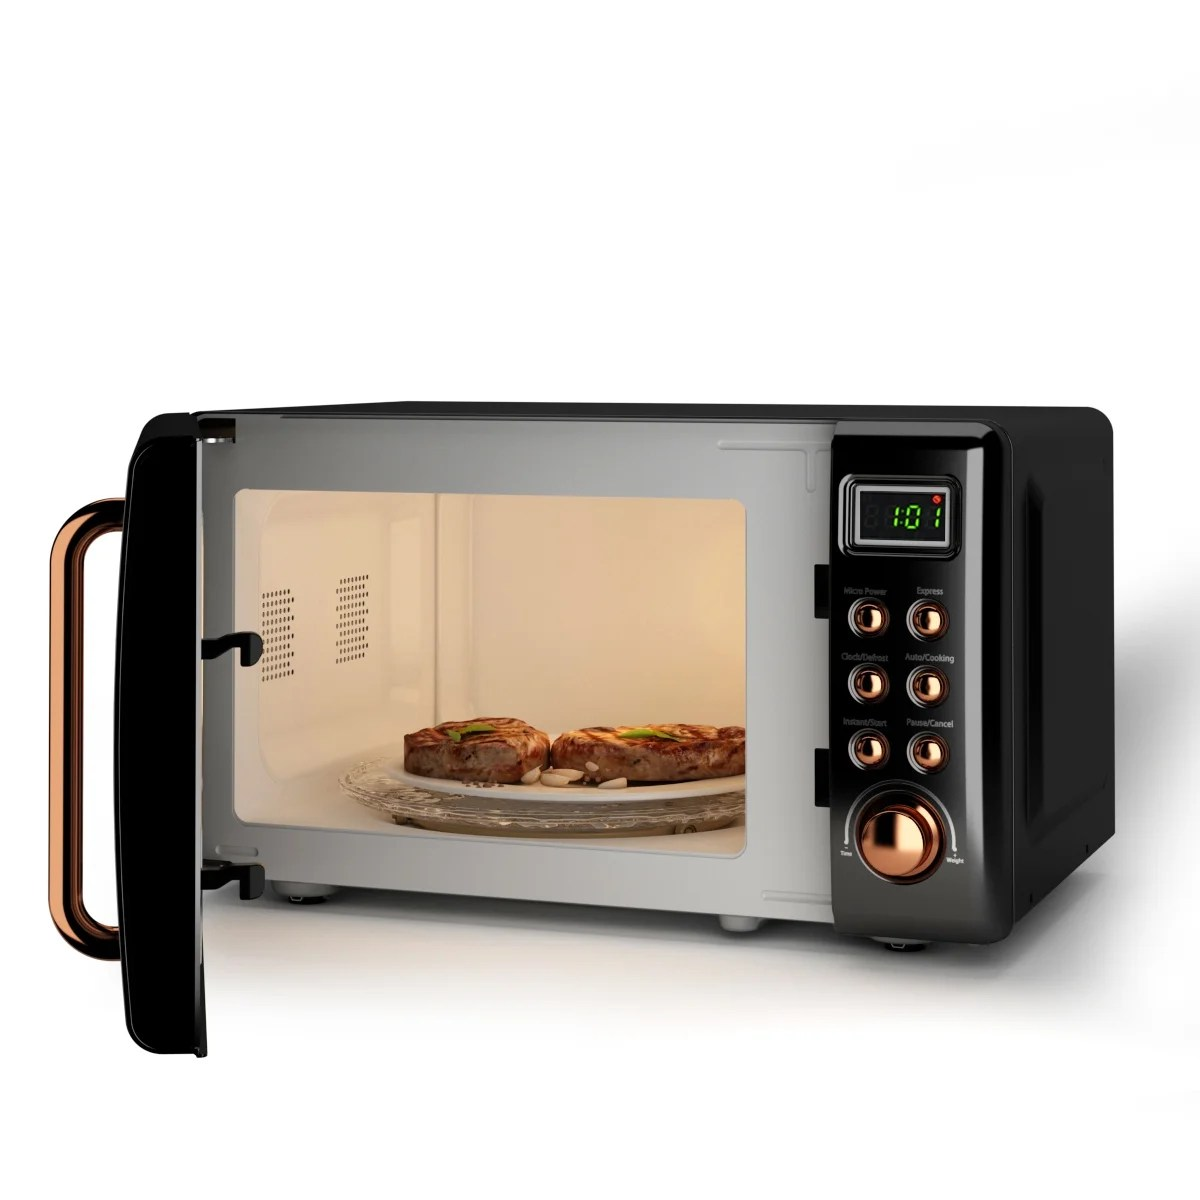 costway 0 7cu ft retro countertop microwave oven 700w led display